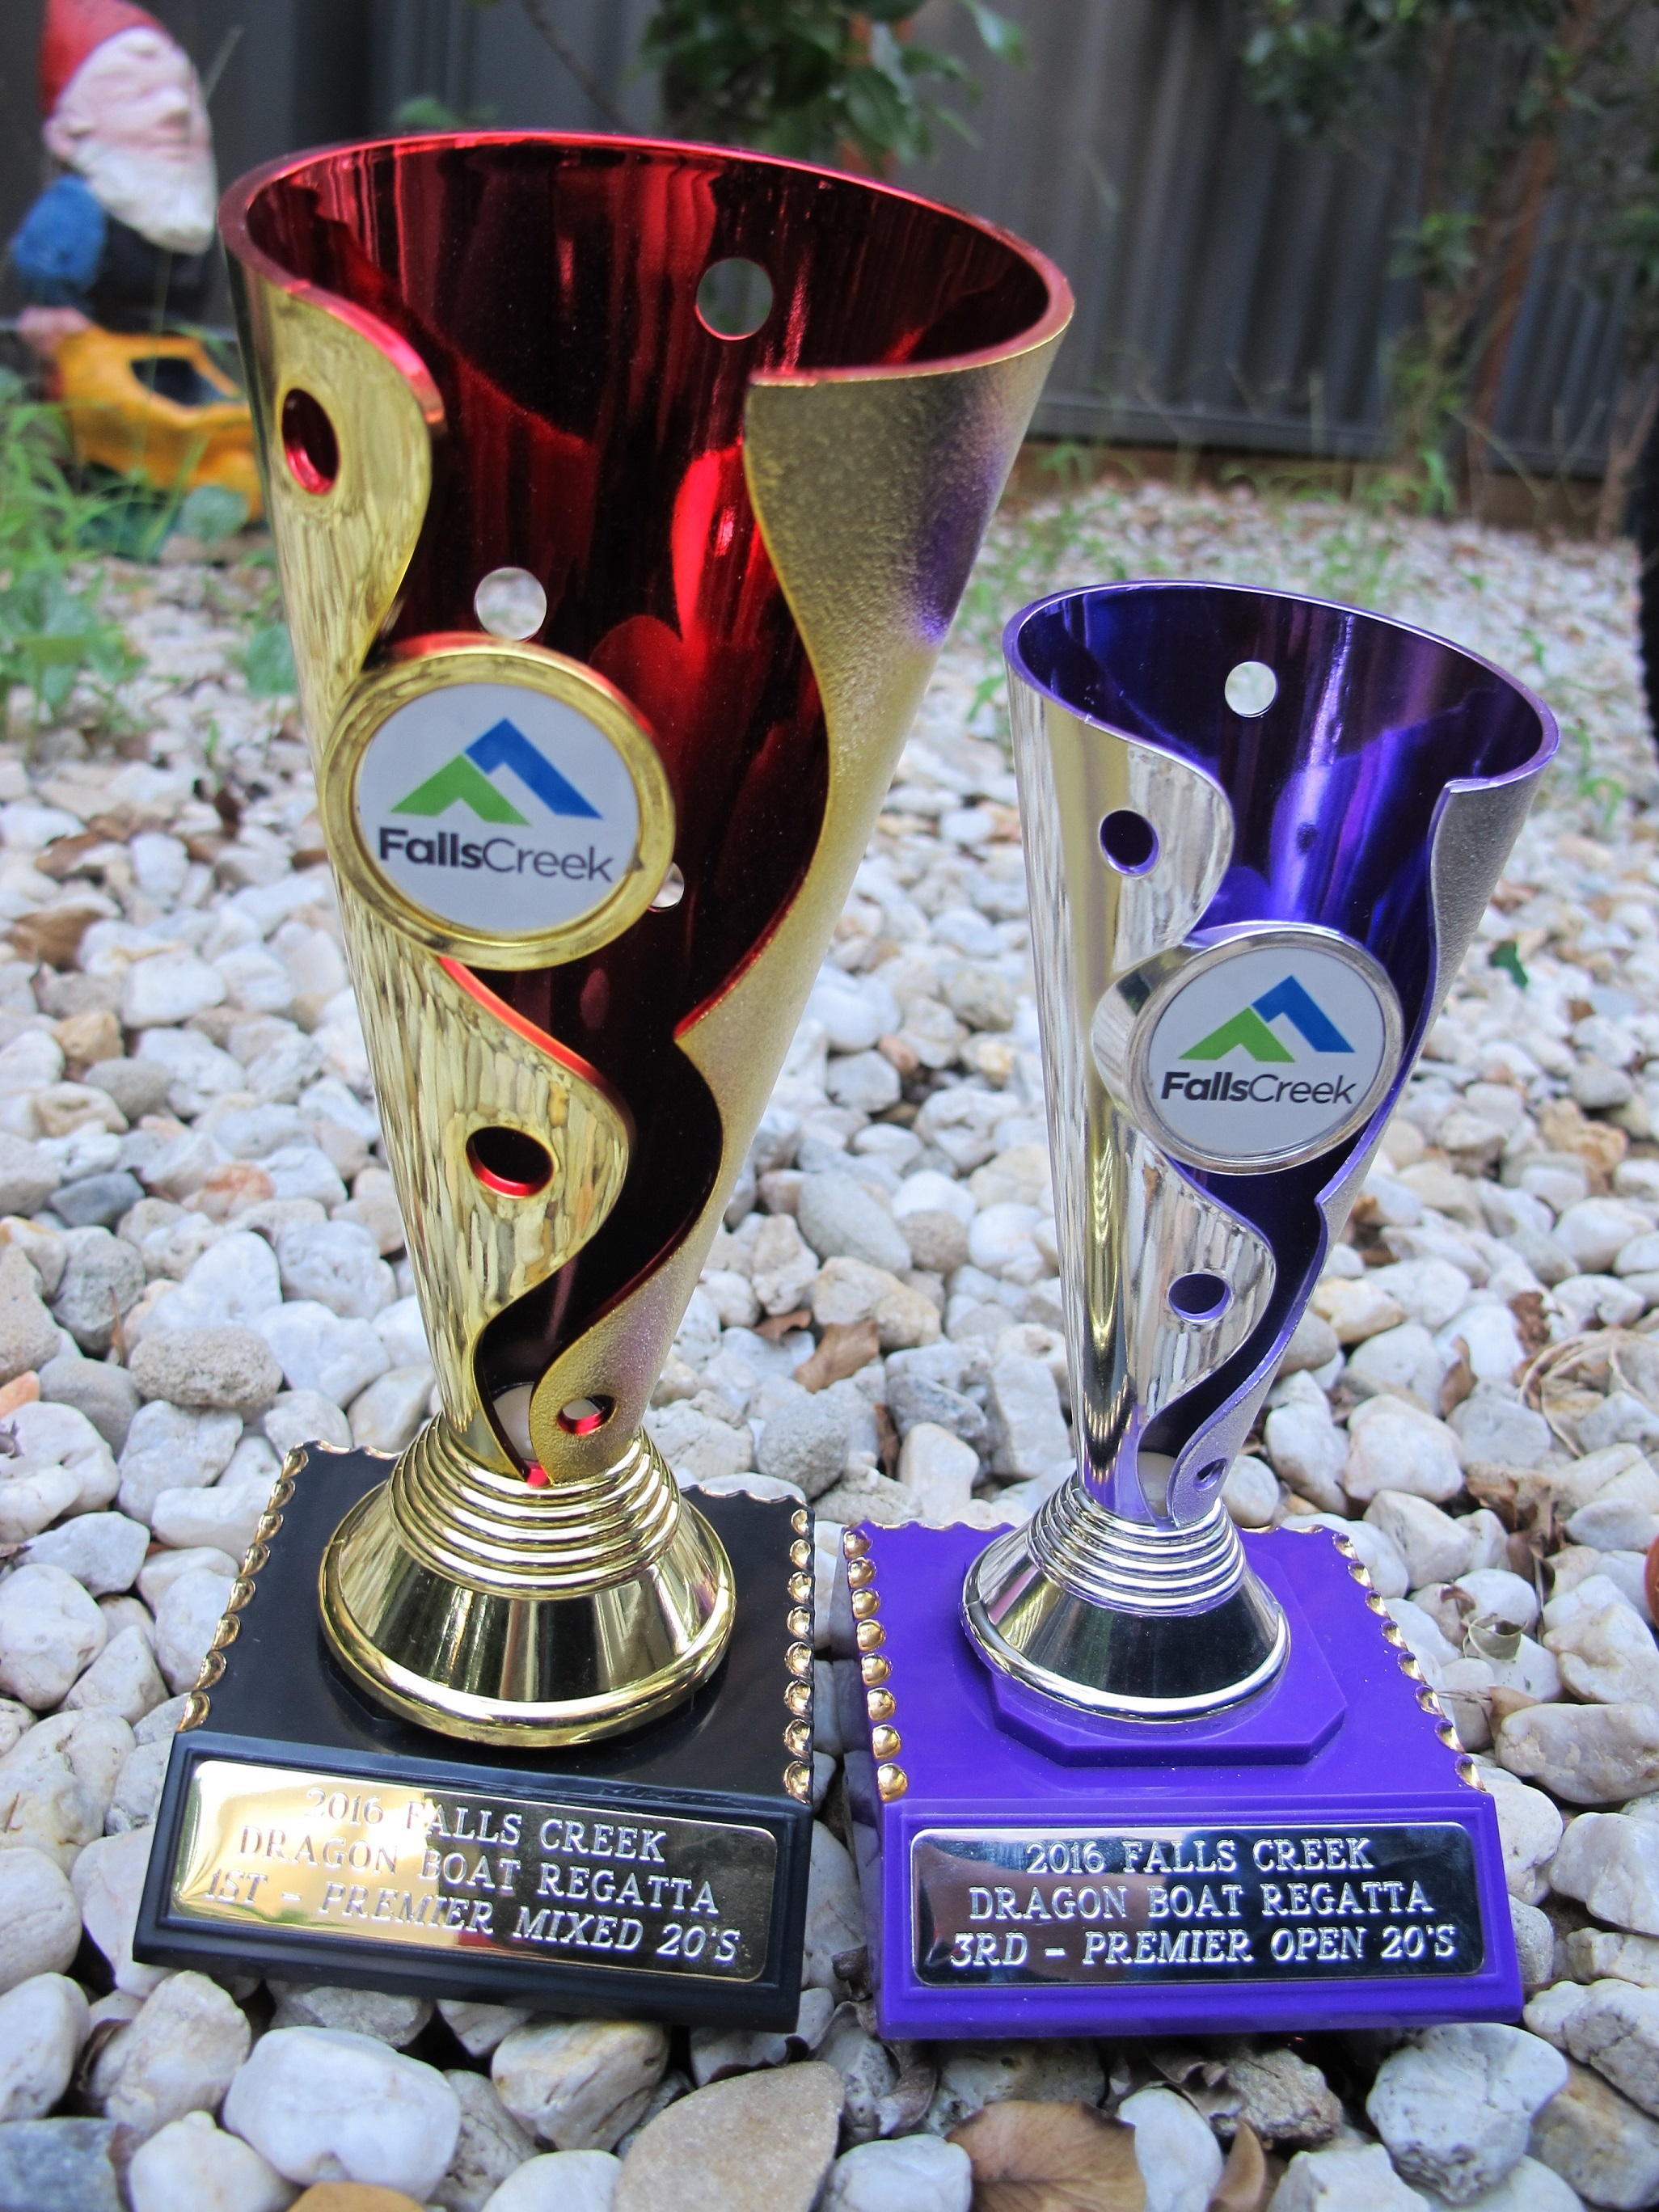 Trophies from Mile High Regatta at Falls Creek 2016